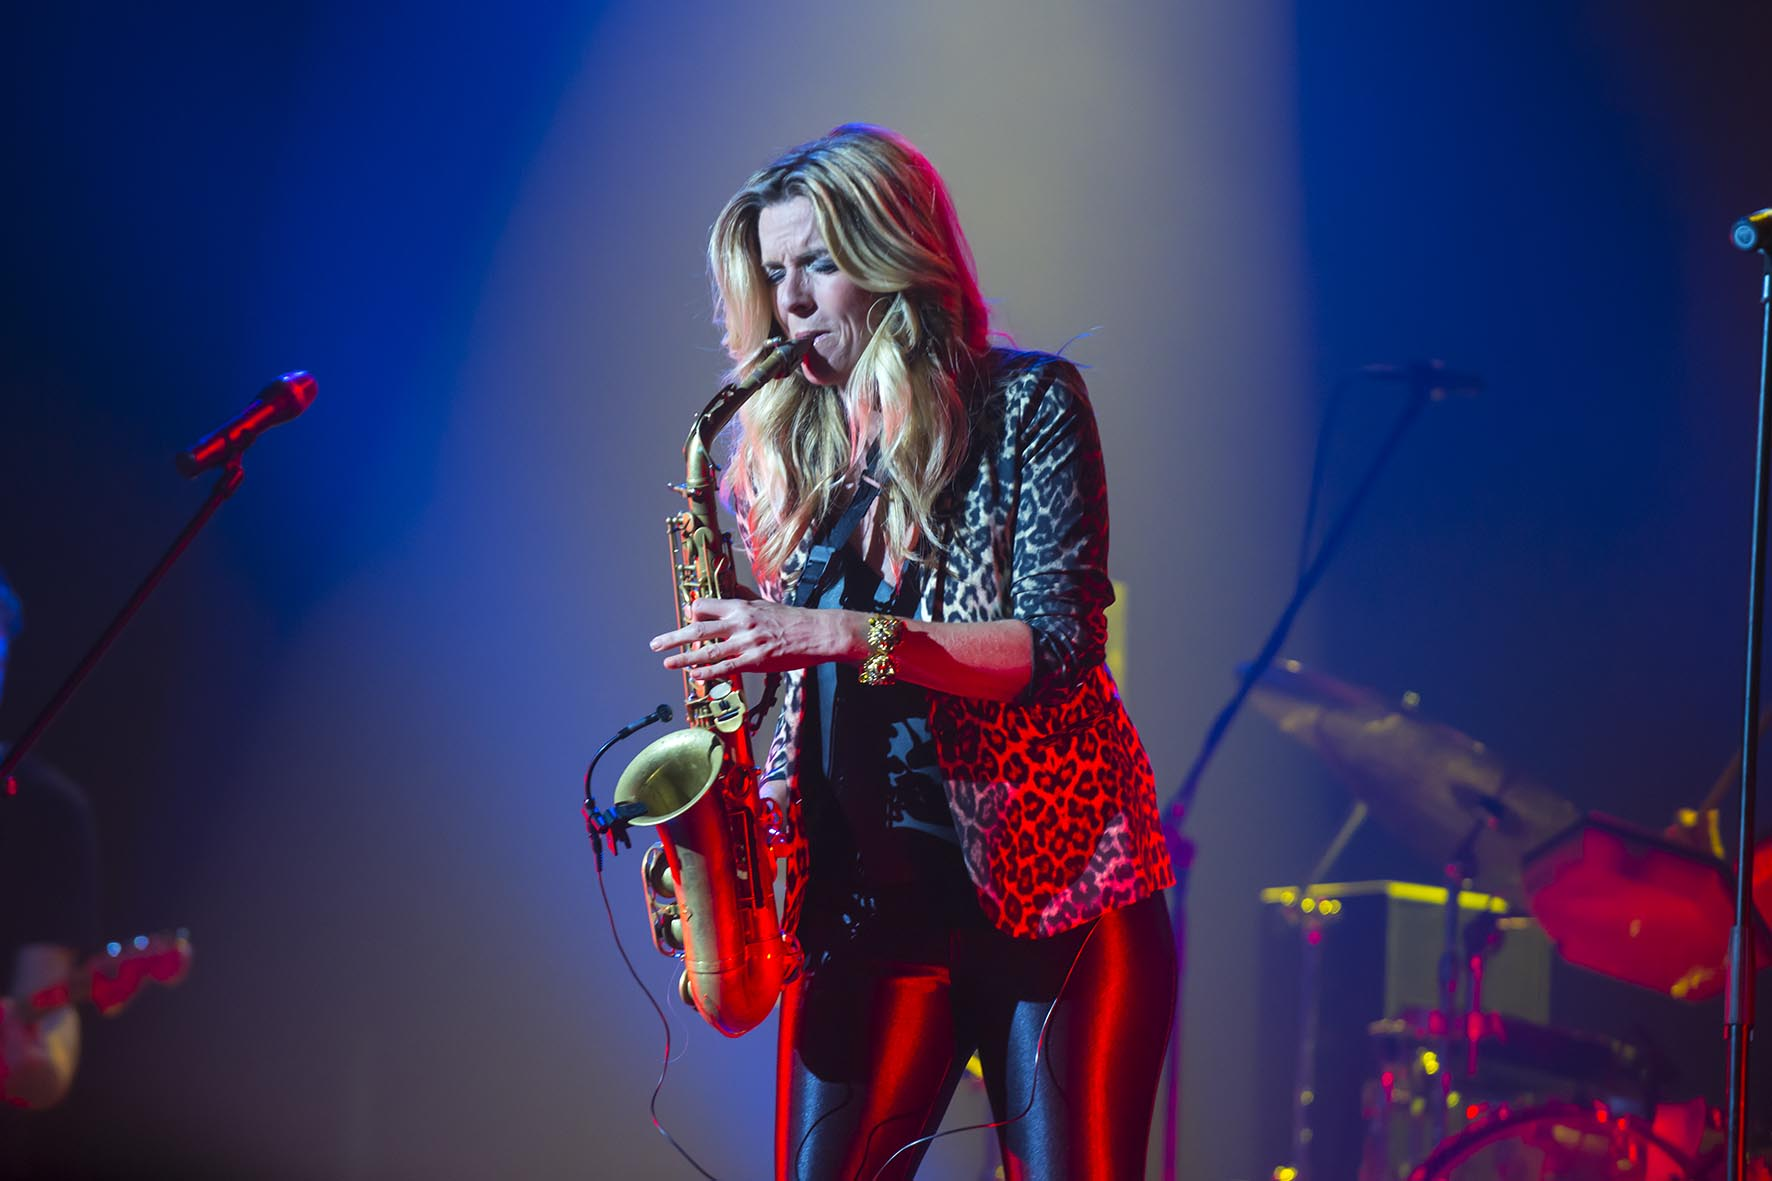 World-Famous Saxophonist Candy Dulfer Gives Concert in